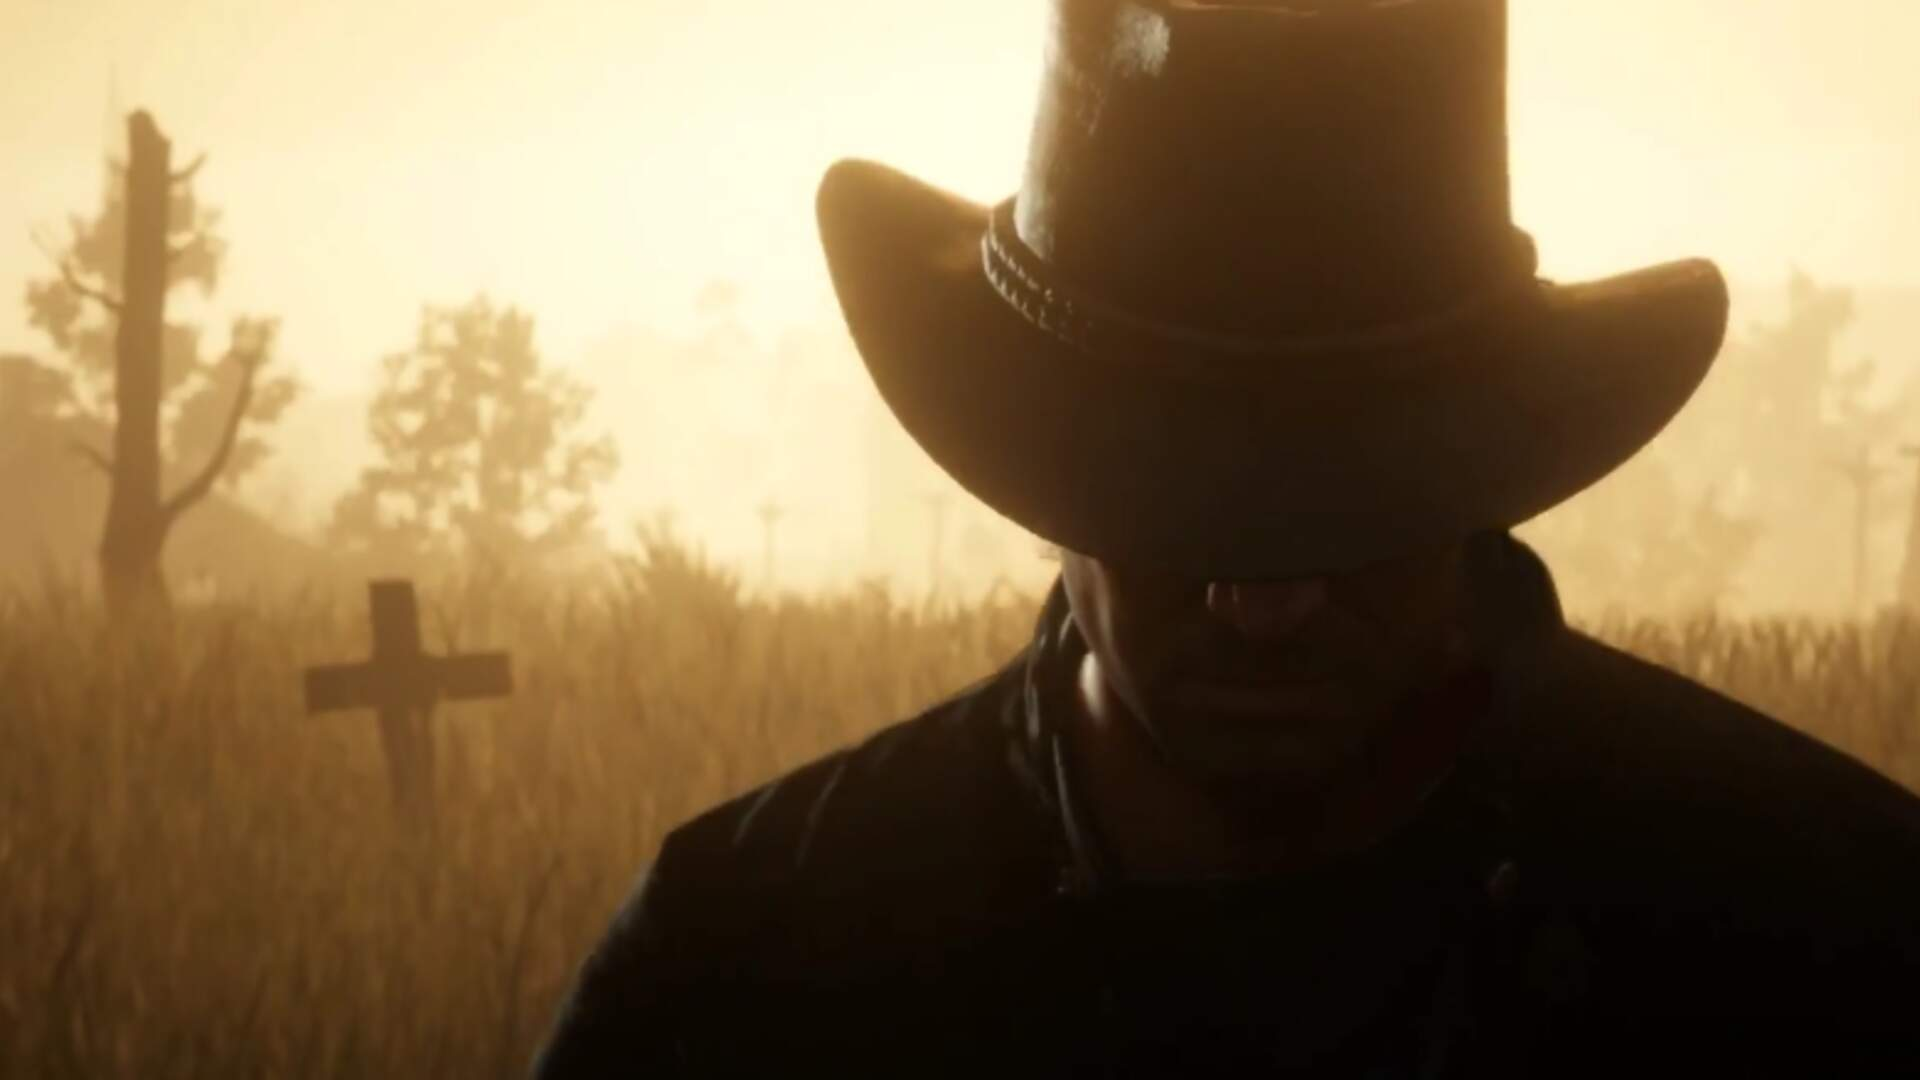 Red Dead Redemption 2 Players Demand HDR Patch After Complaints of Blurry Picture Quality